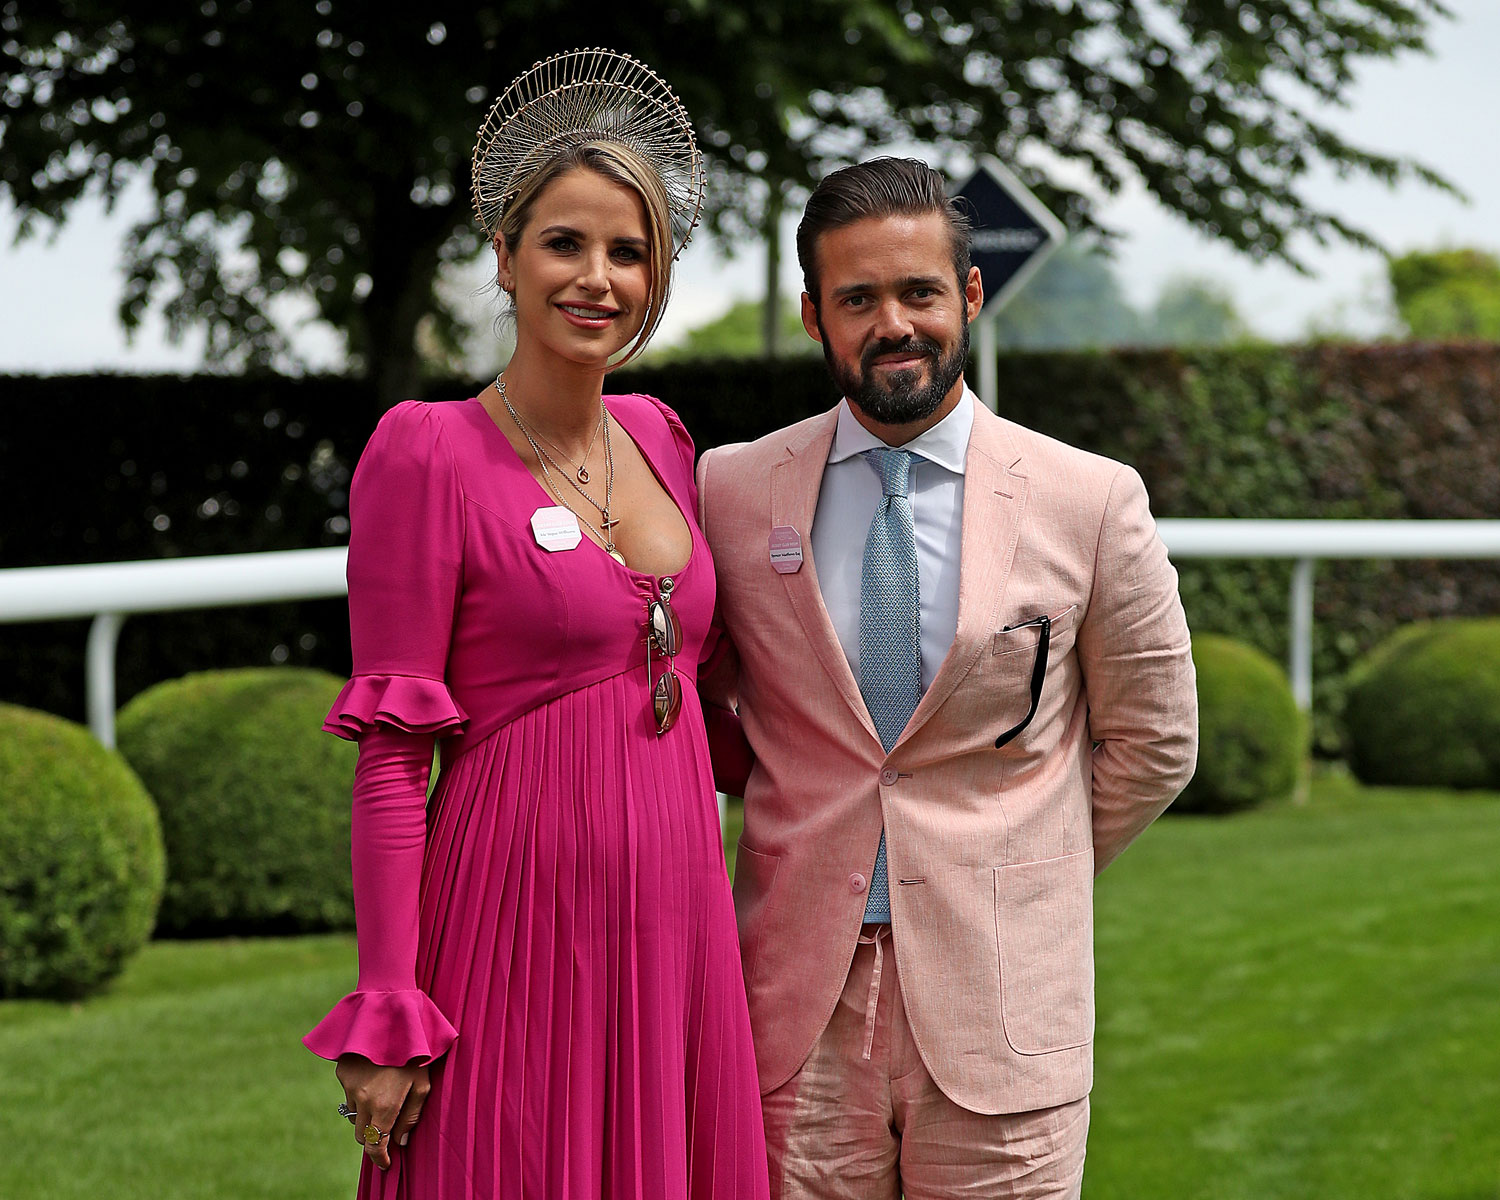 pippa middleton in law wedding